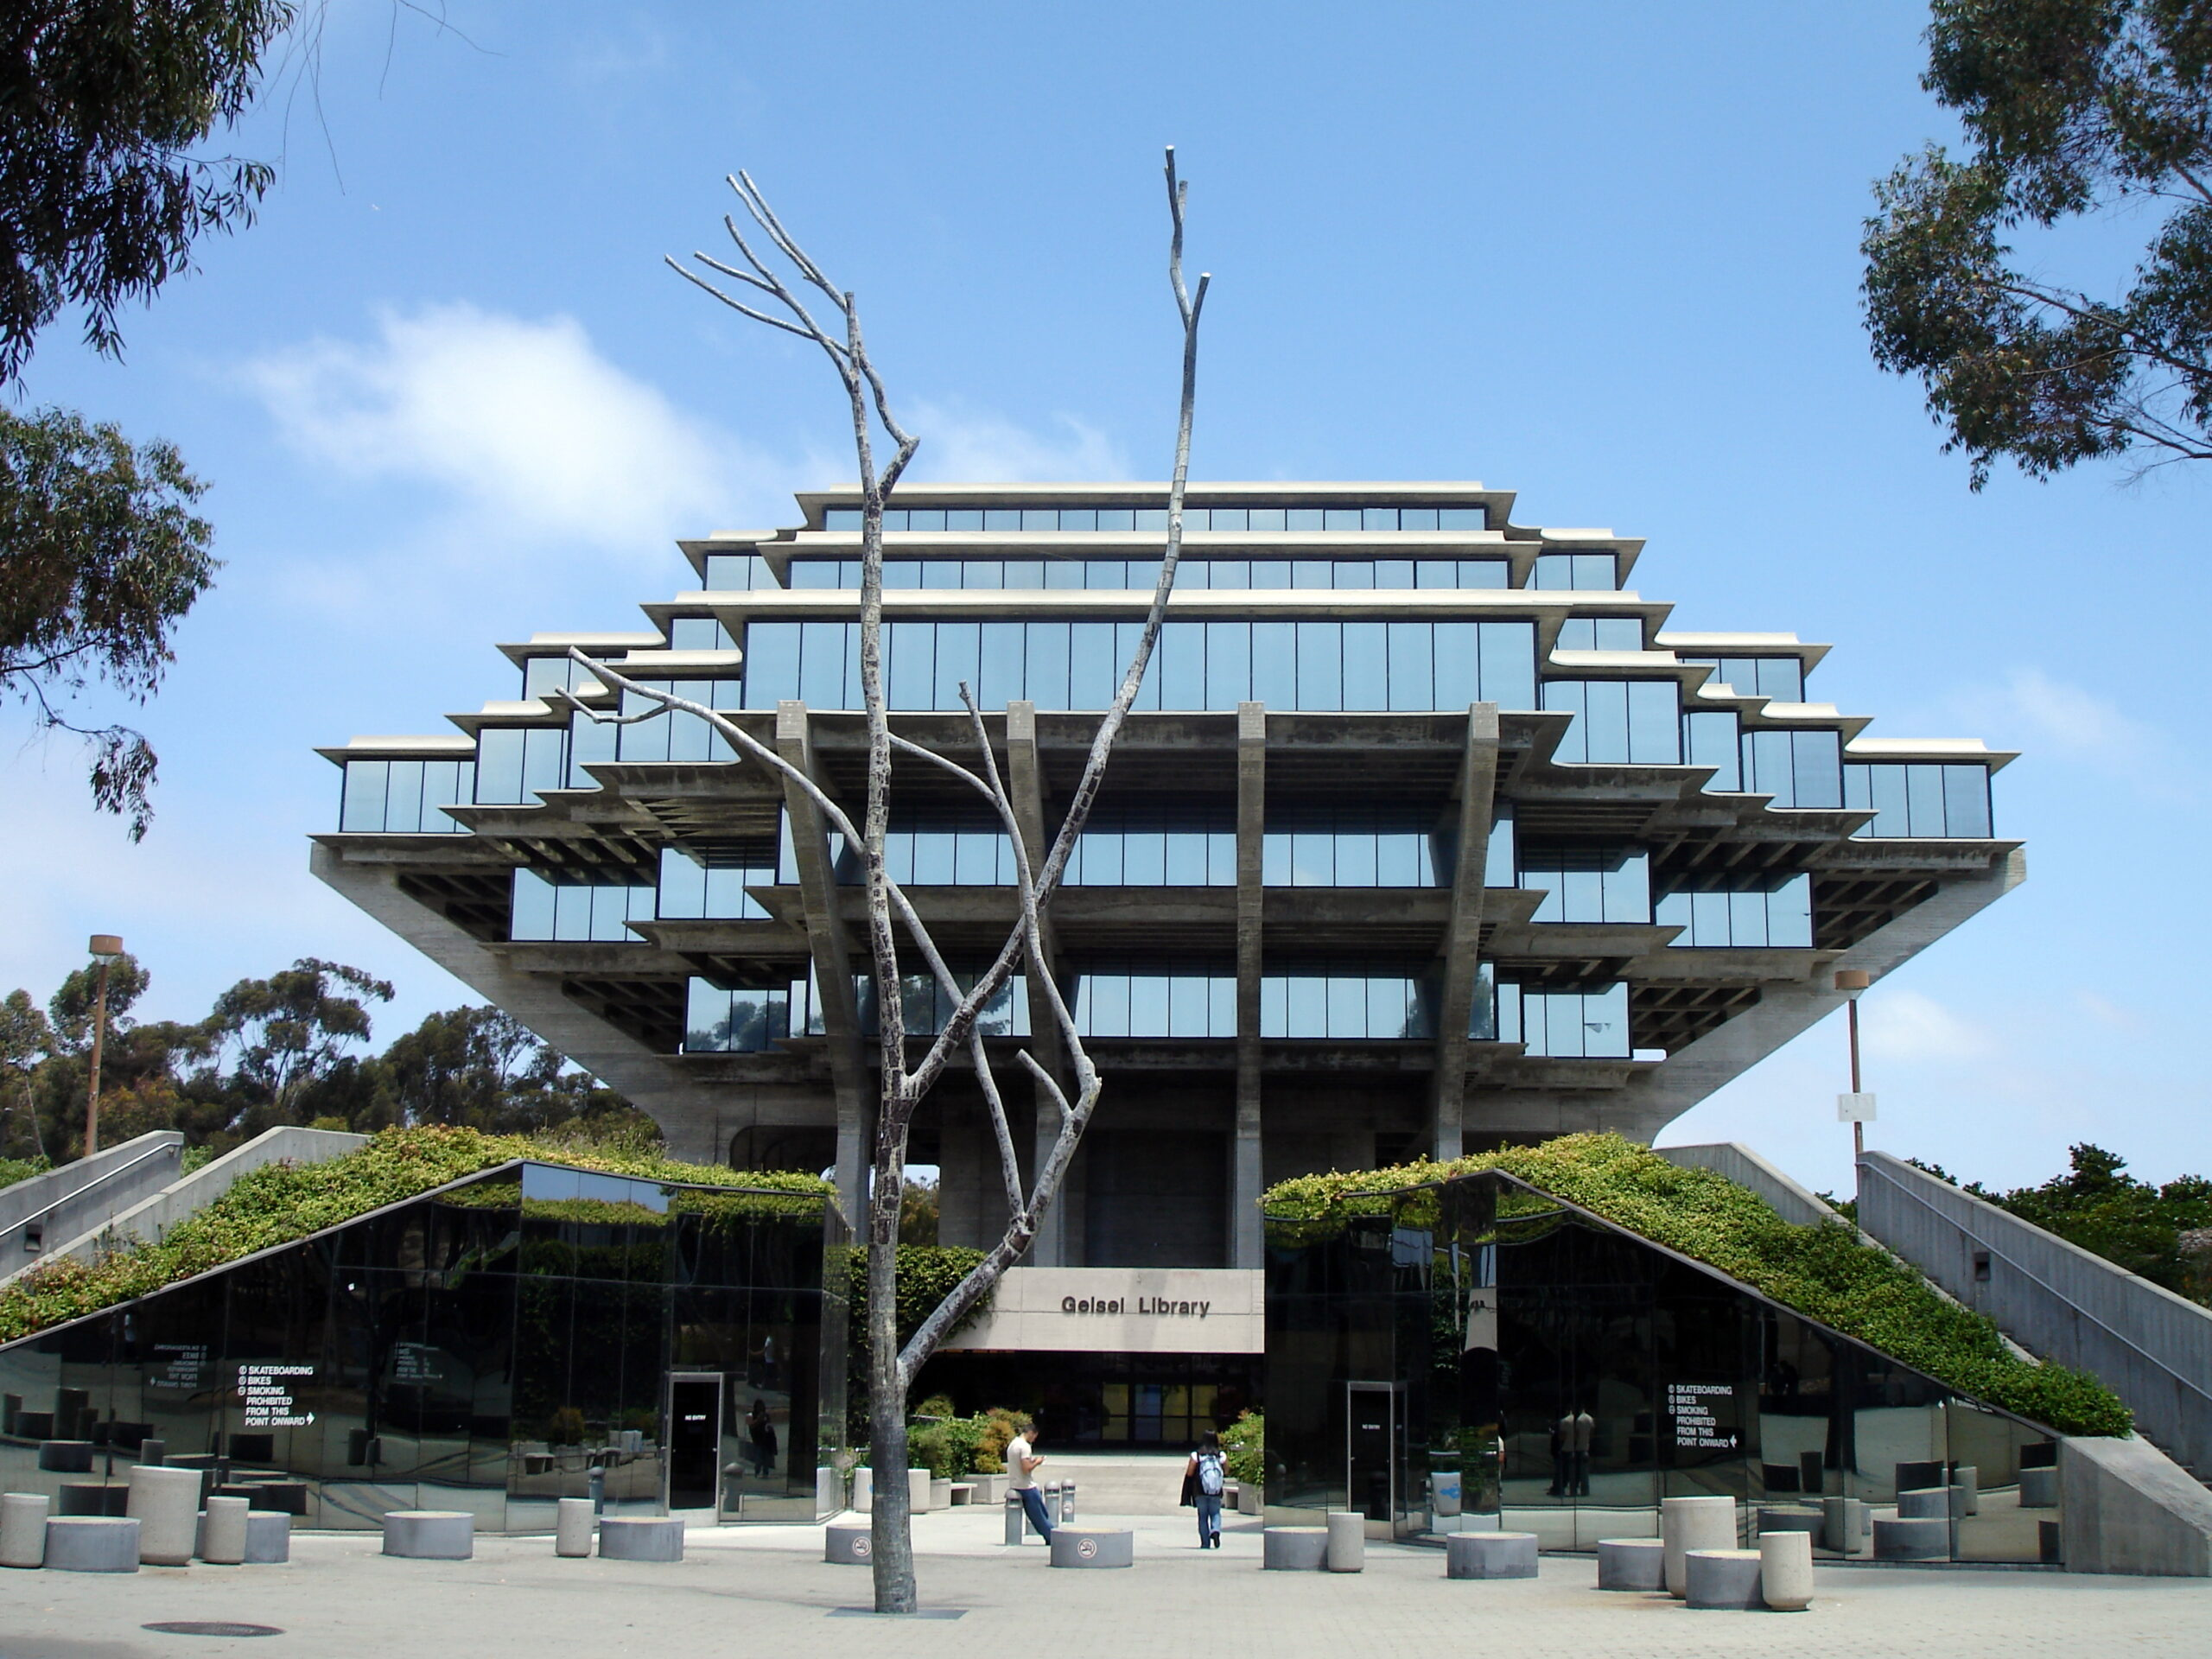 The Geisel Library (1968) at University of California in San Diego, designed by William Pereira in the style of Brutalism